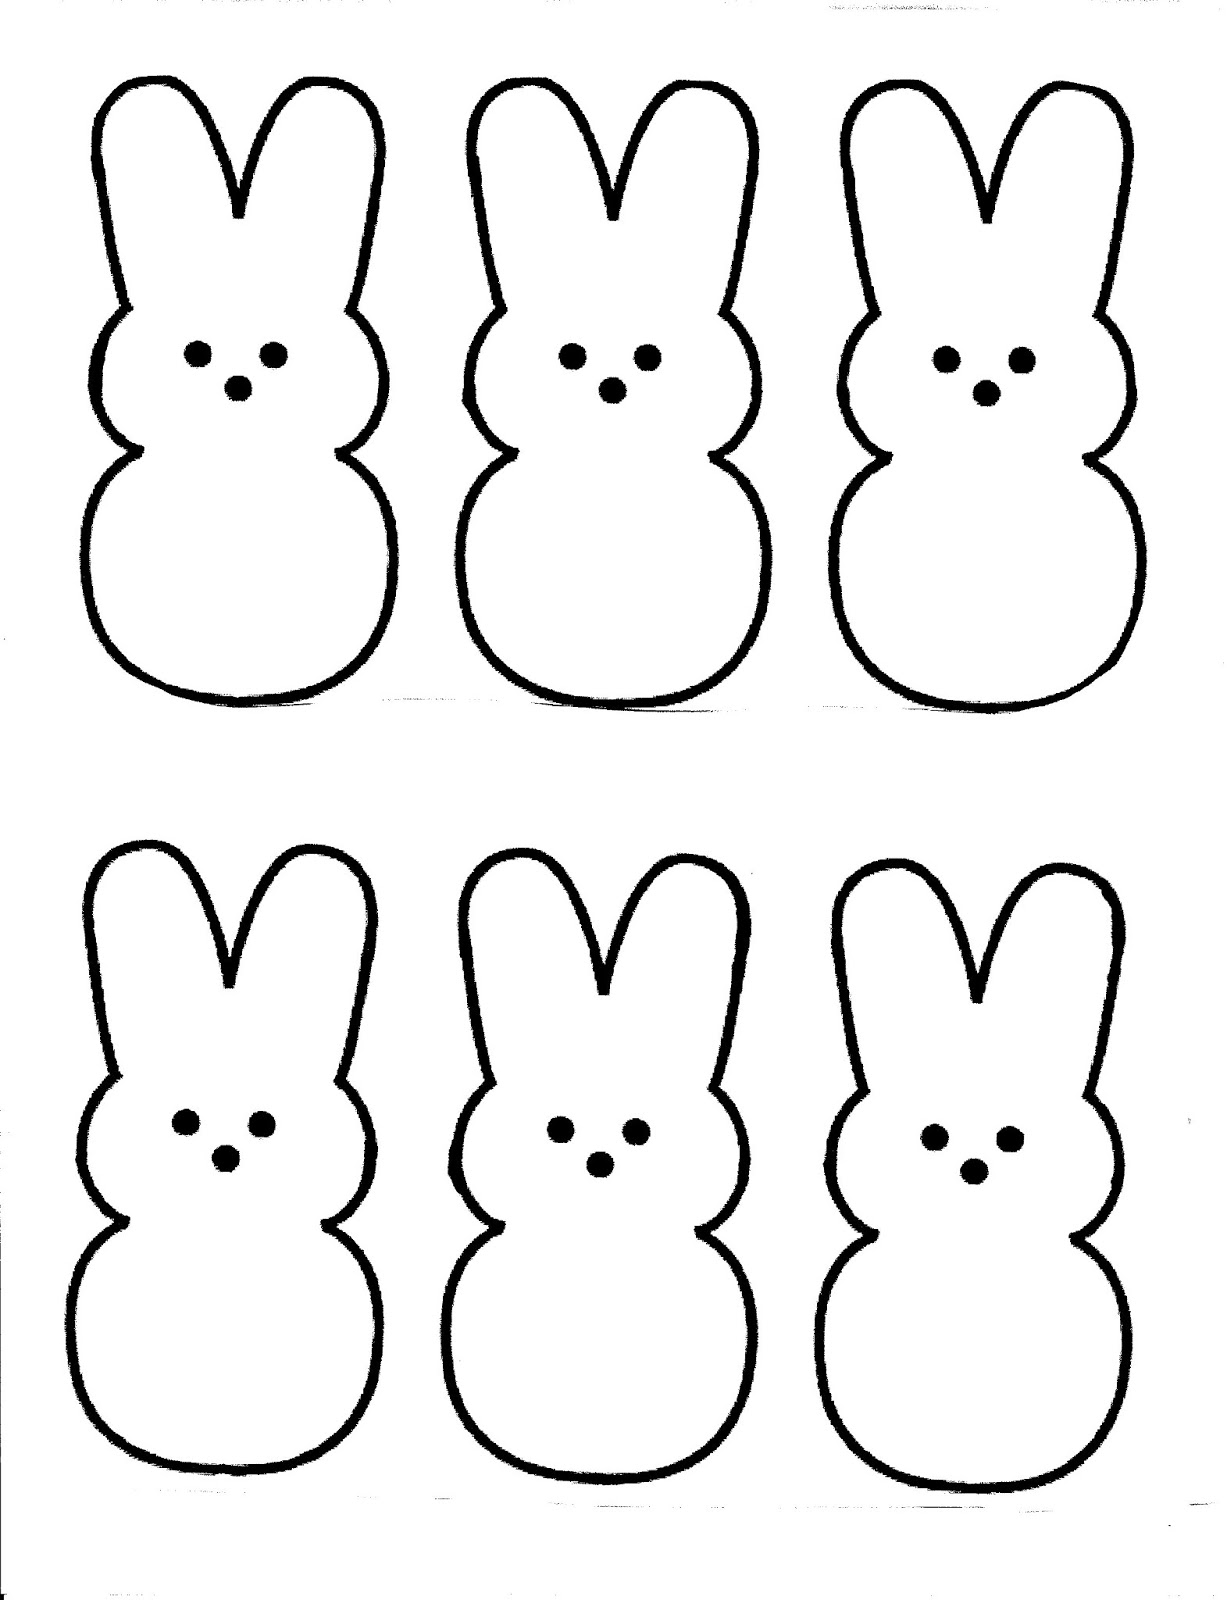 coloring pages free printable easter | Nanny's Nonsense: Easter peeps printable